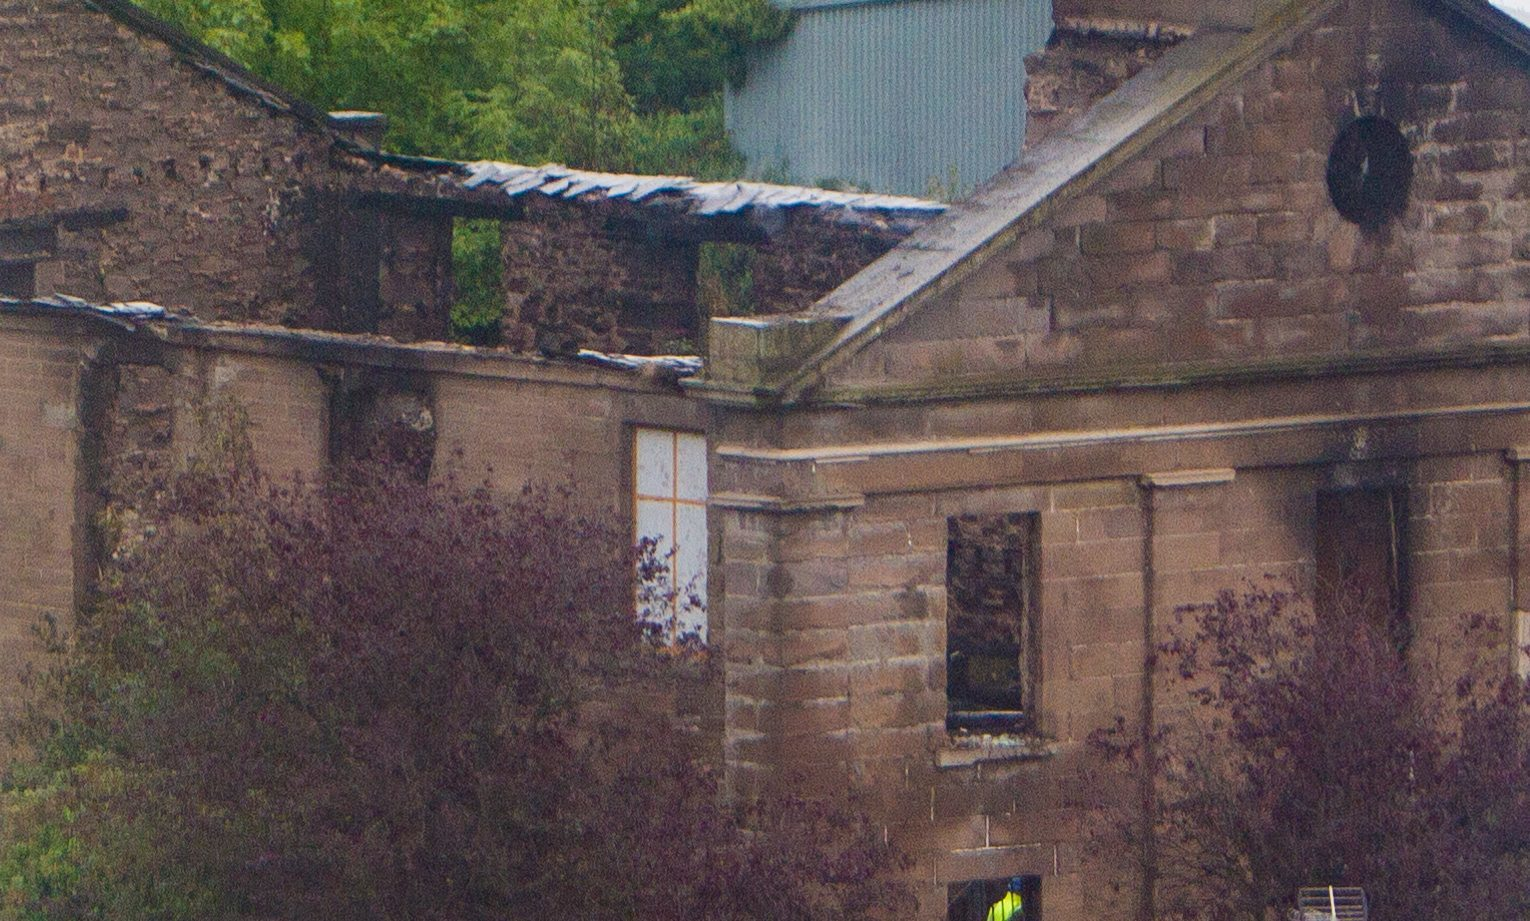 The blaze has left only a shell of a building at Lochee Old Church.